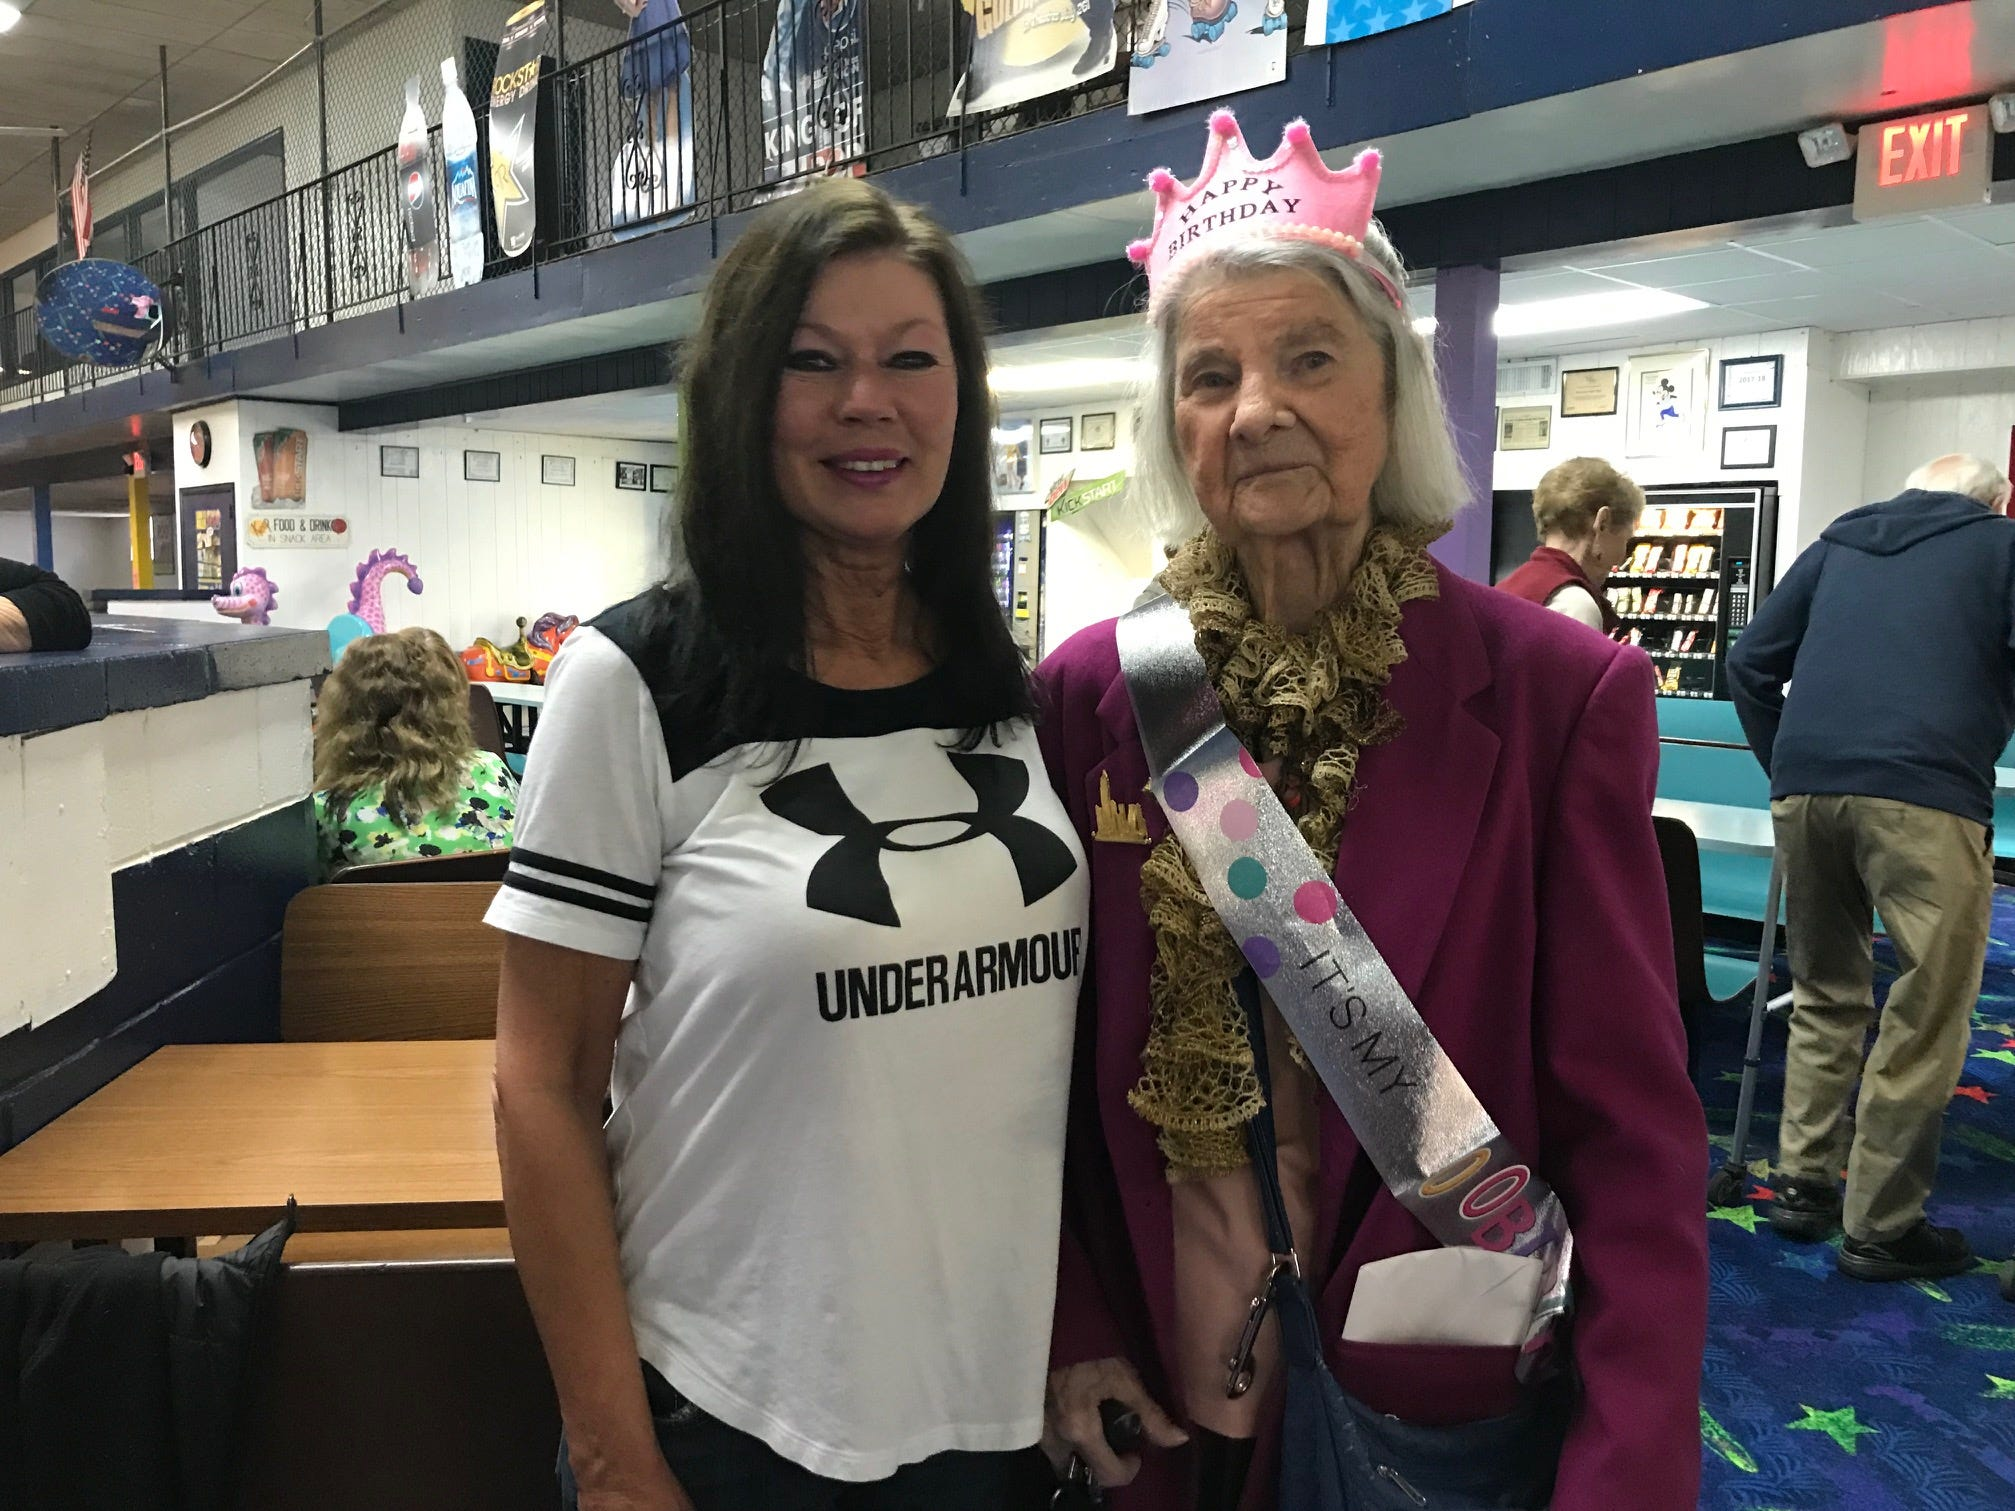 Carrie Callandrullo, with South Amboy Arena owner Jeanne Durnye, Dcelebrated her 100th birthday Nov. 14 with her friends at the skating rink. At least twice a week, more than 20 seniors regularly gather at South Amboy Arenaand take to the rink for a couple hours of roller skating. They range in age from 55 to 100.